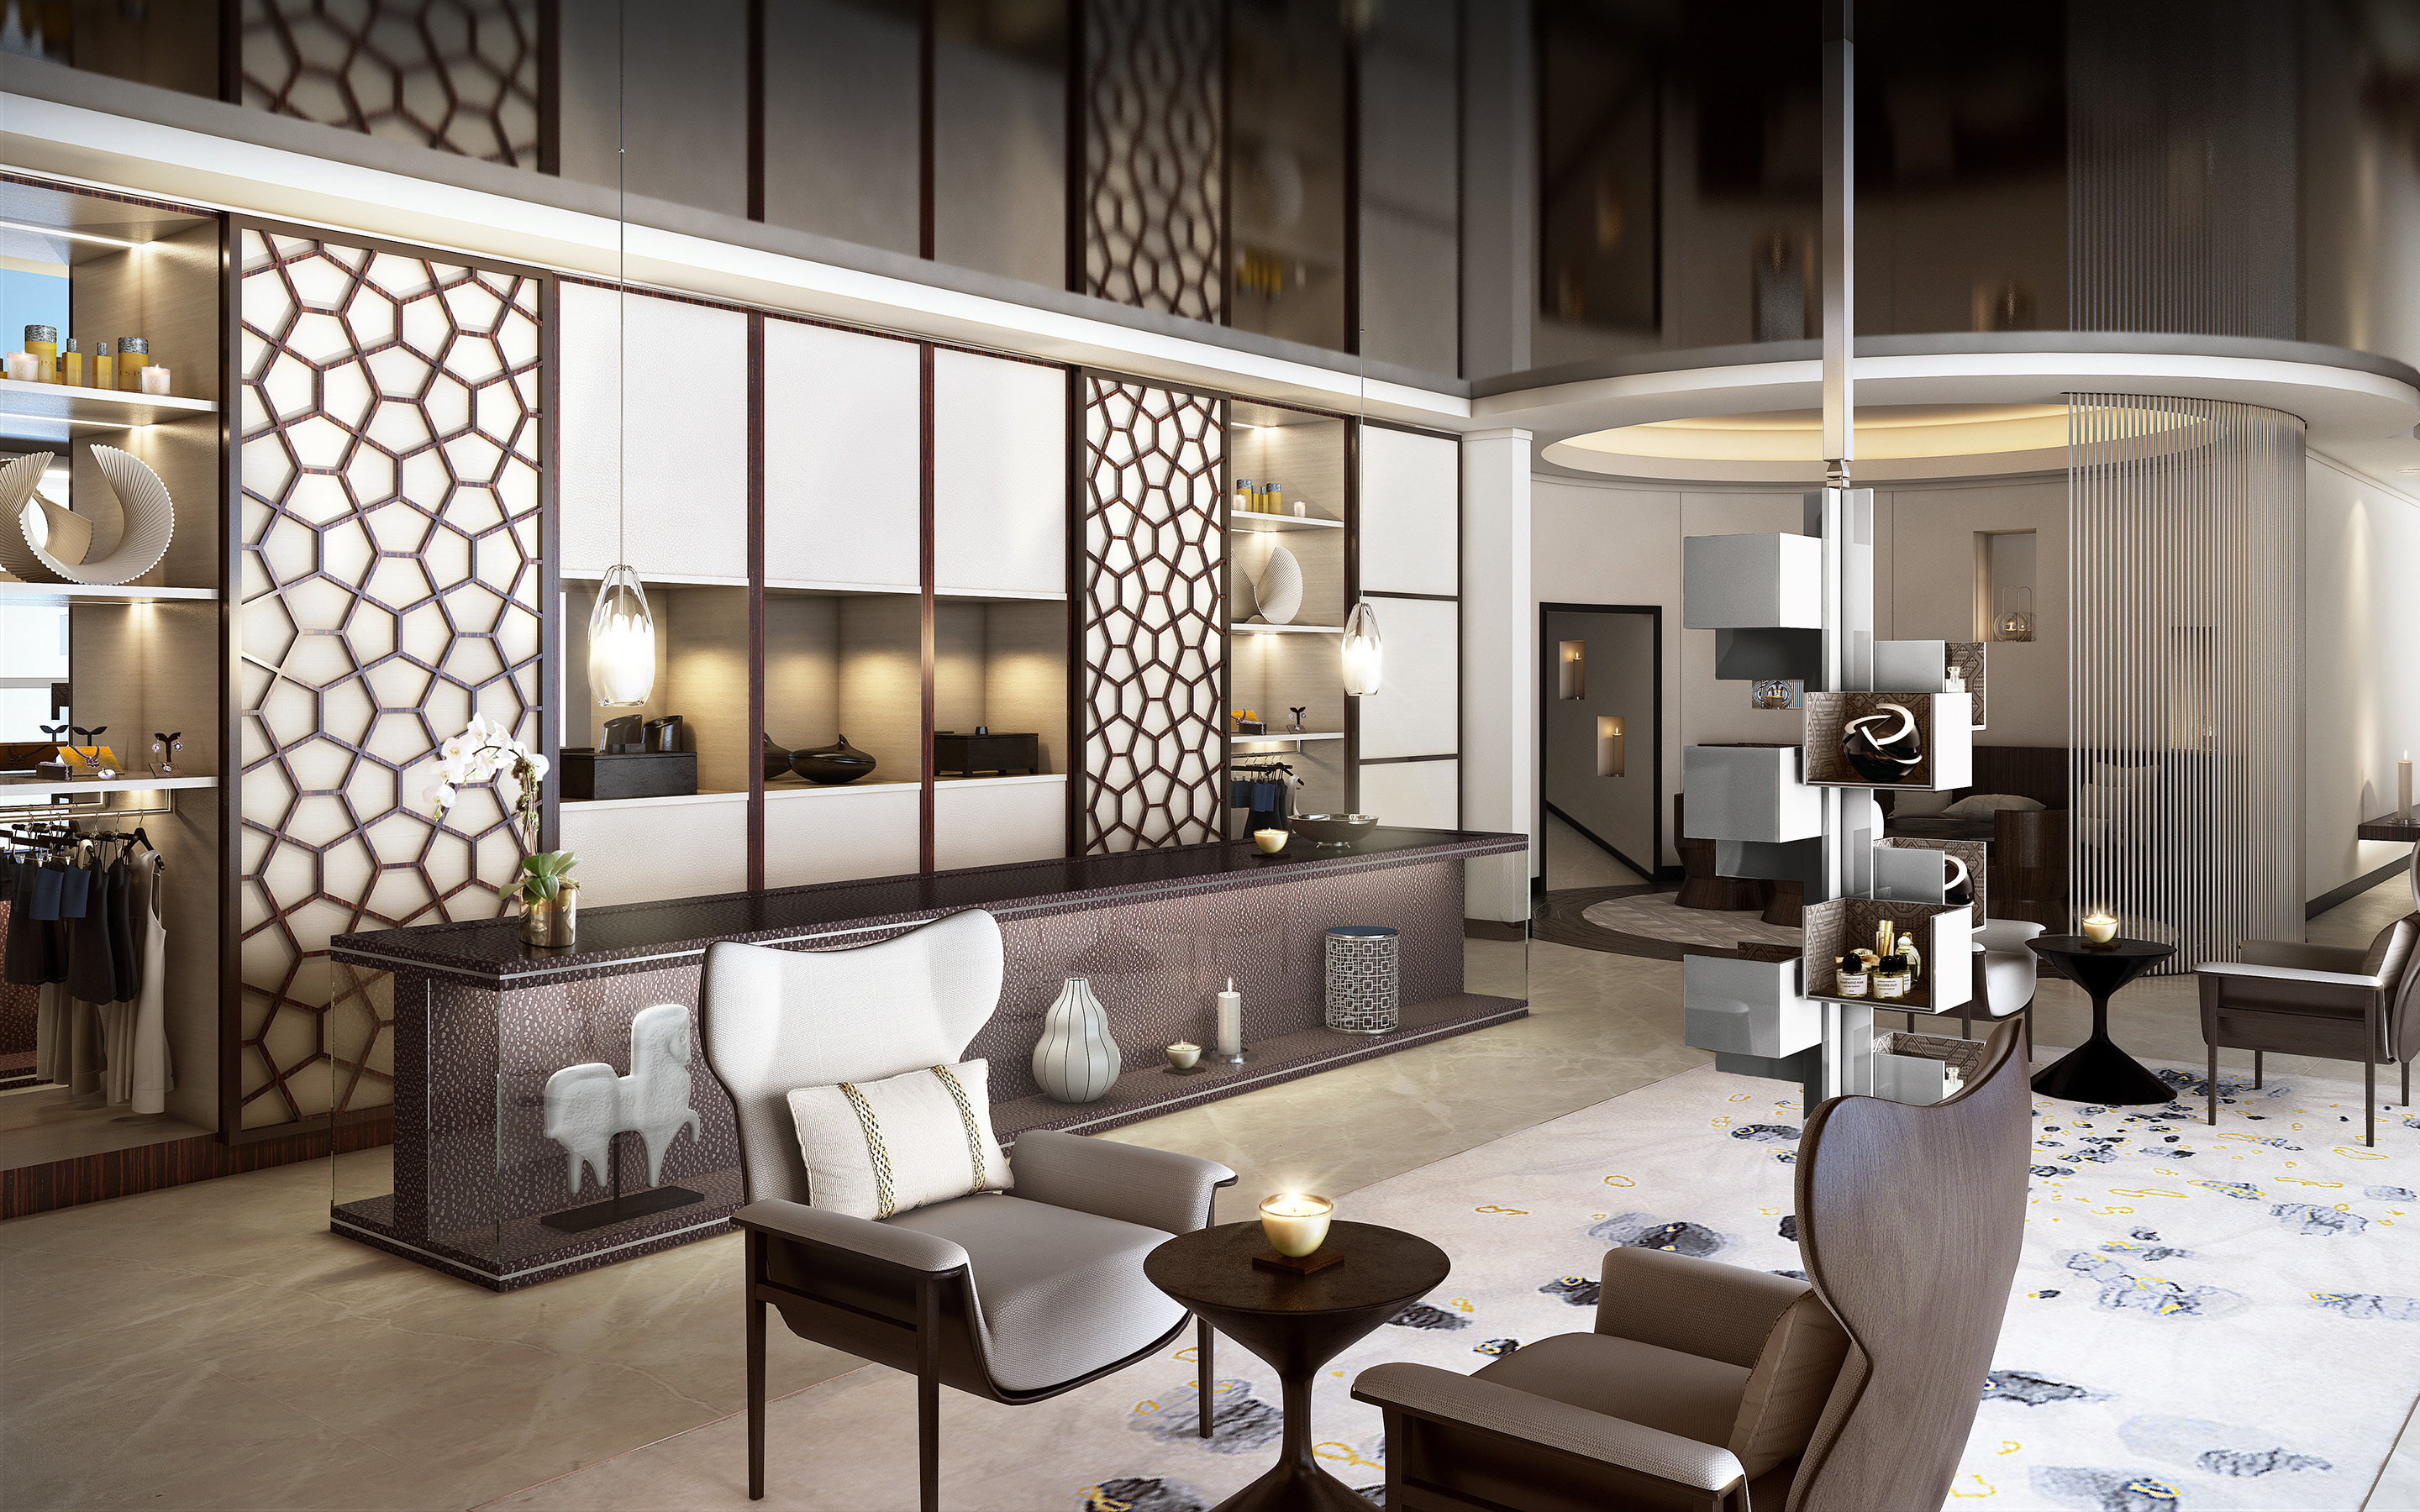 Luxury hotel qatar the gettys group for Hospitality interior design